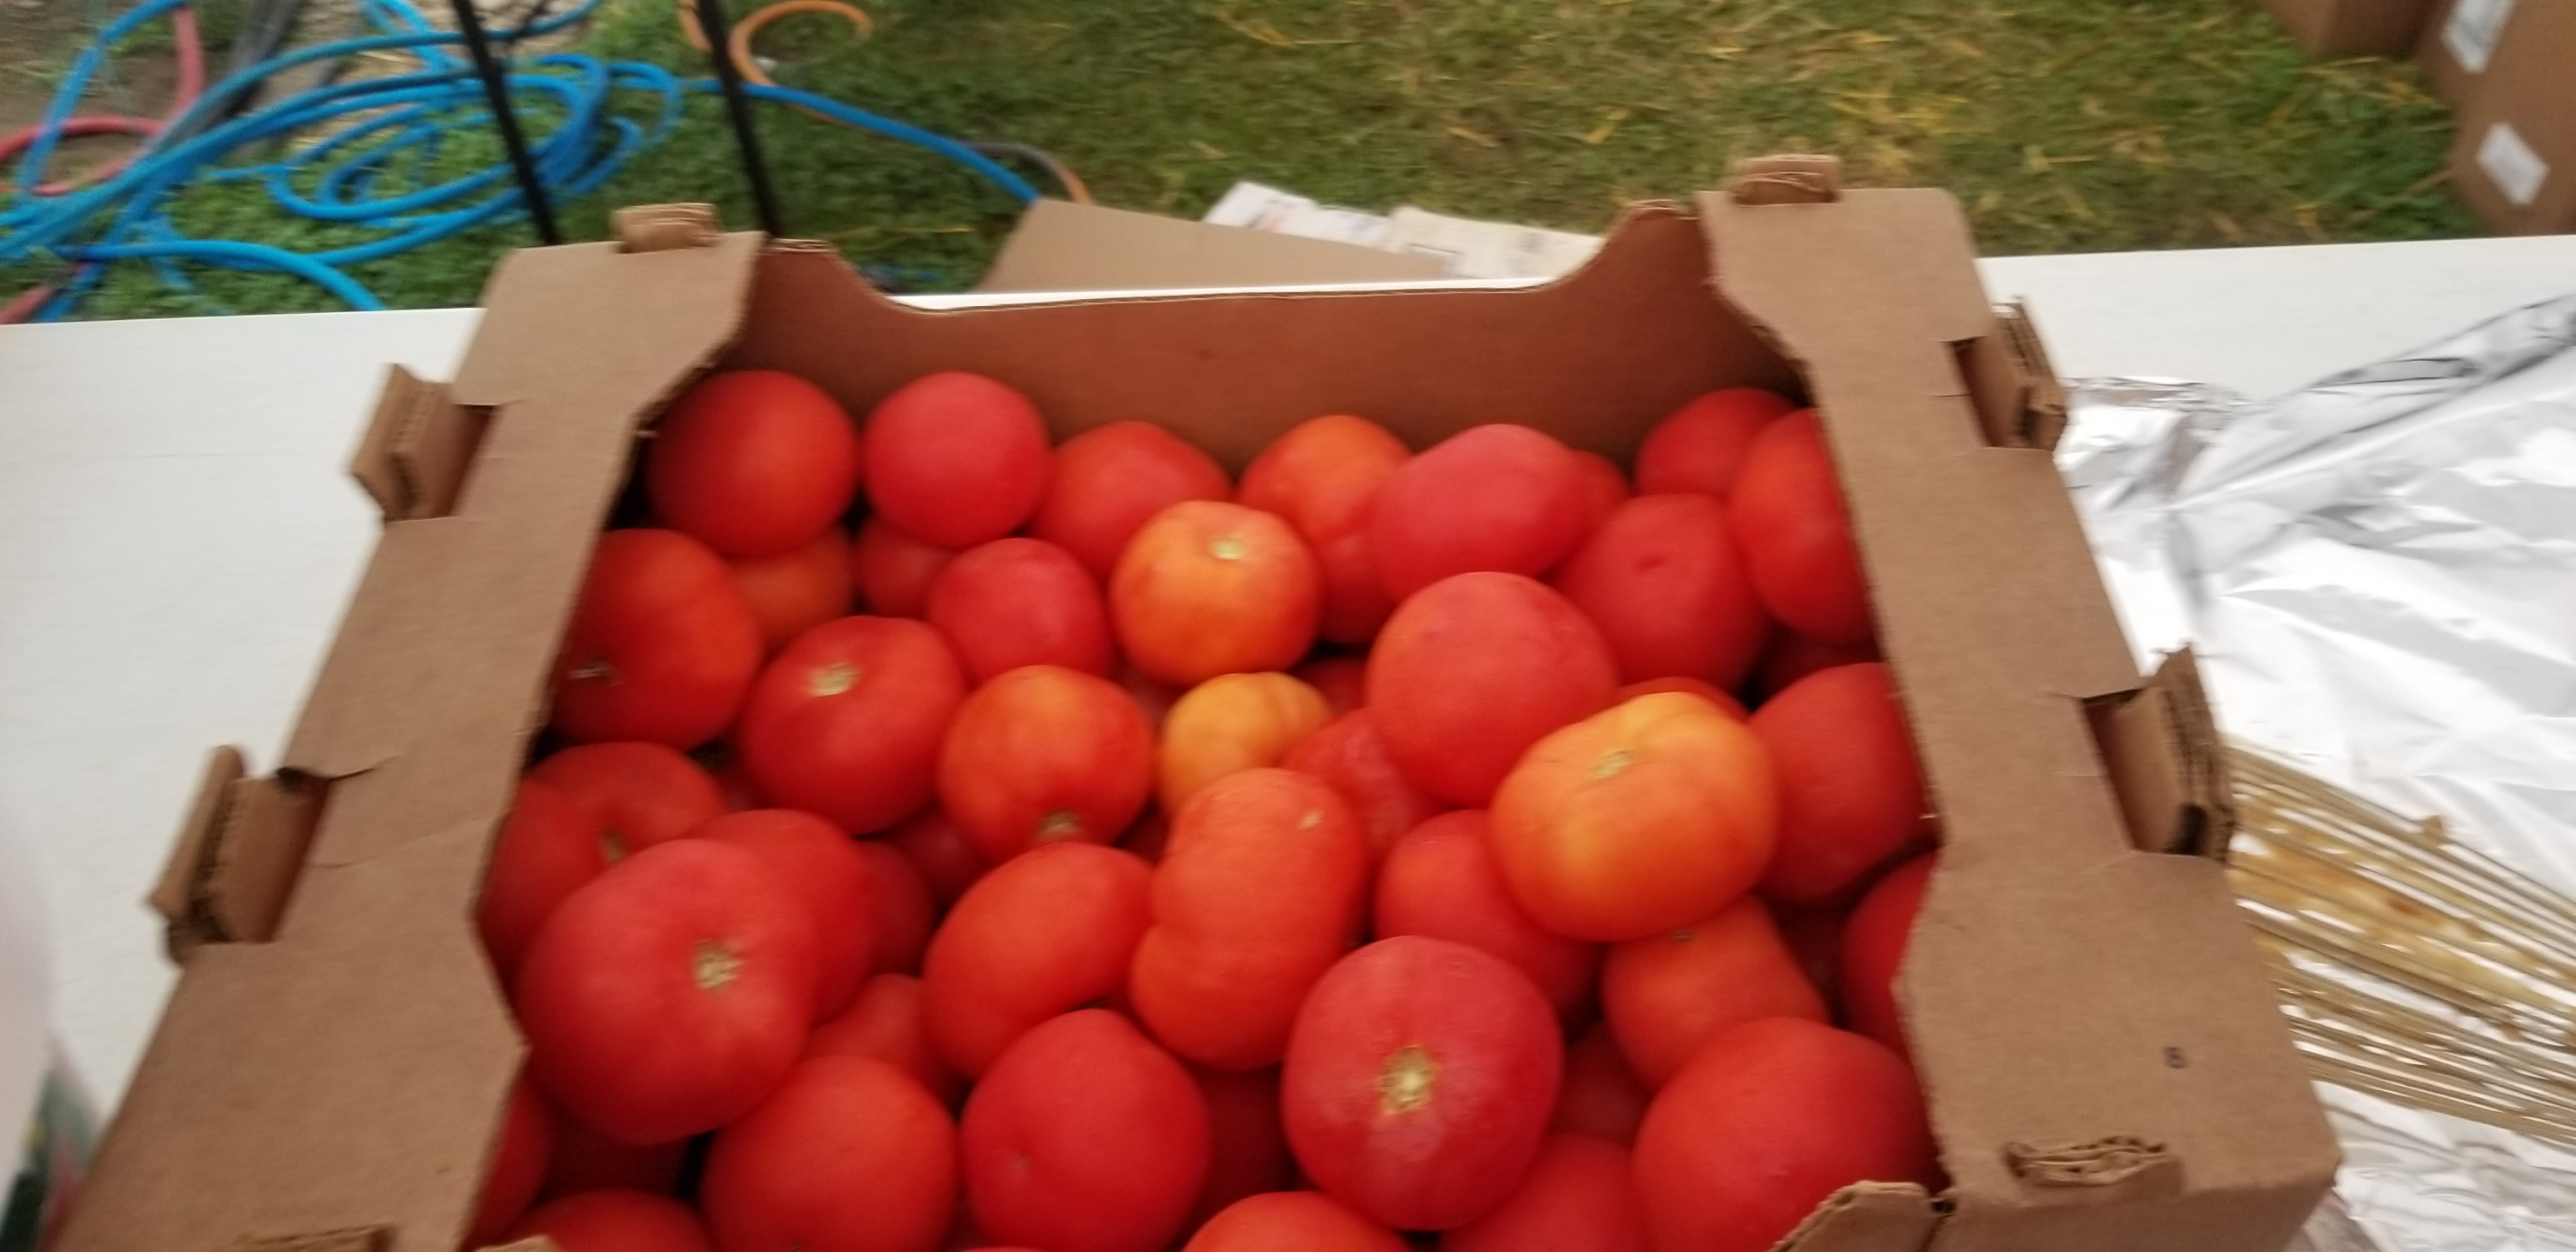 Tomatoes in box